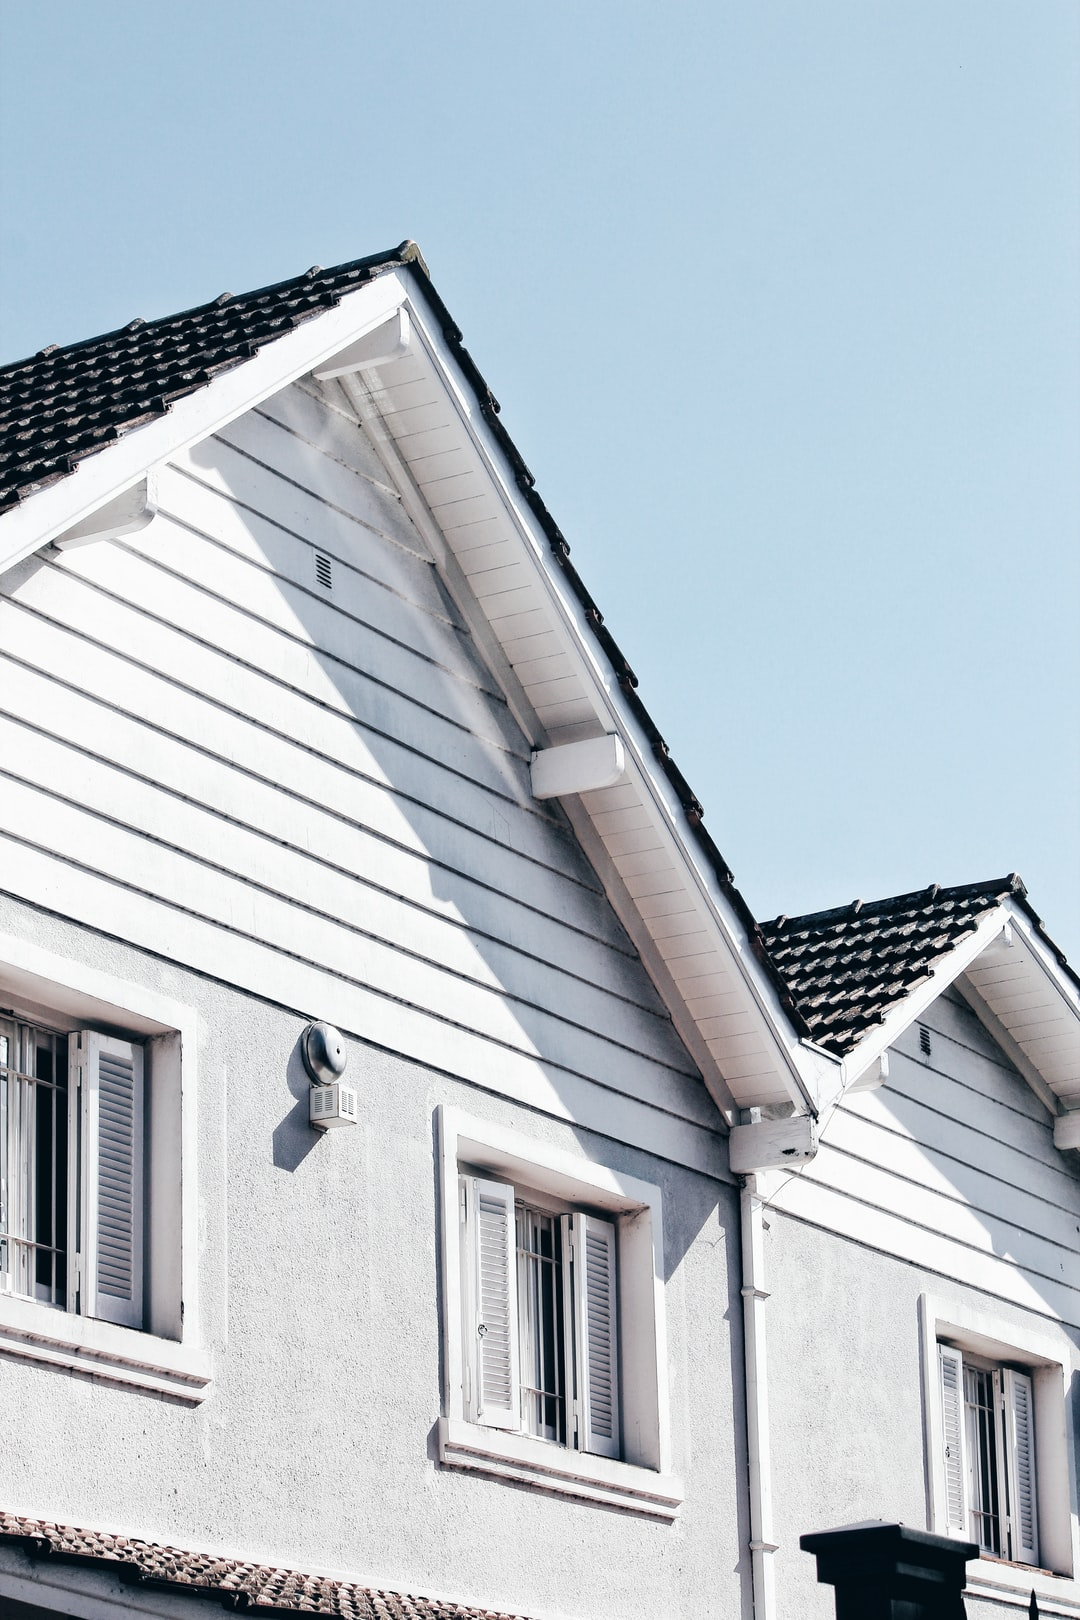 Can I Get a Home Equity Loan With a 500 Credit Score? The Answer Is Yes